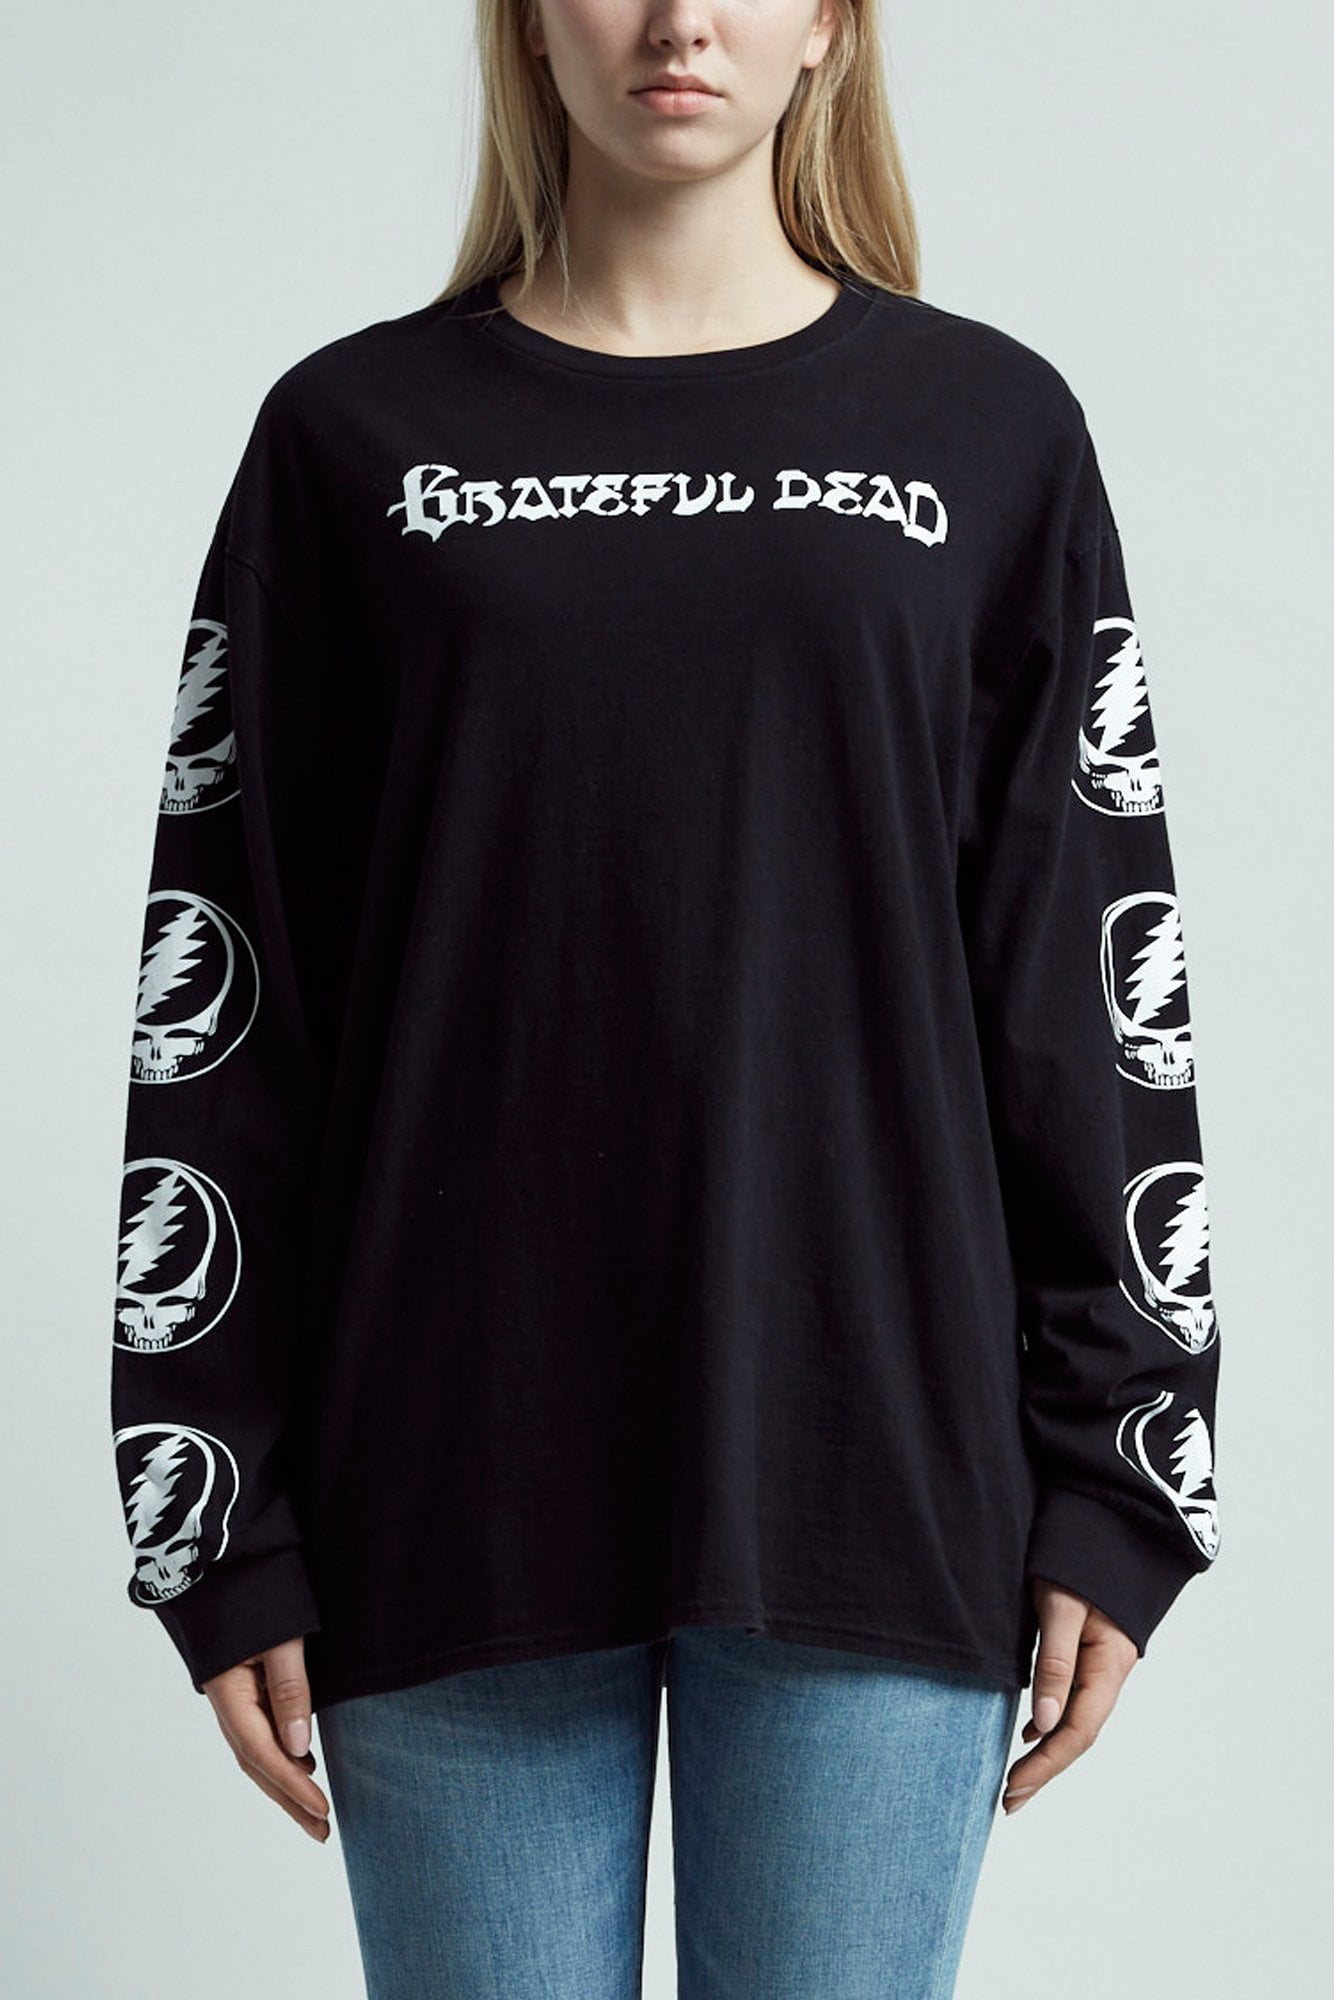 Steal Your Face Long Sleeve T- Black